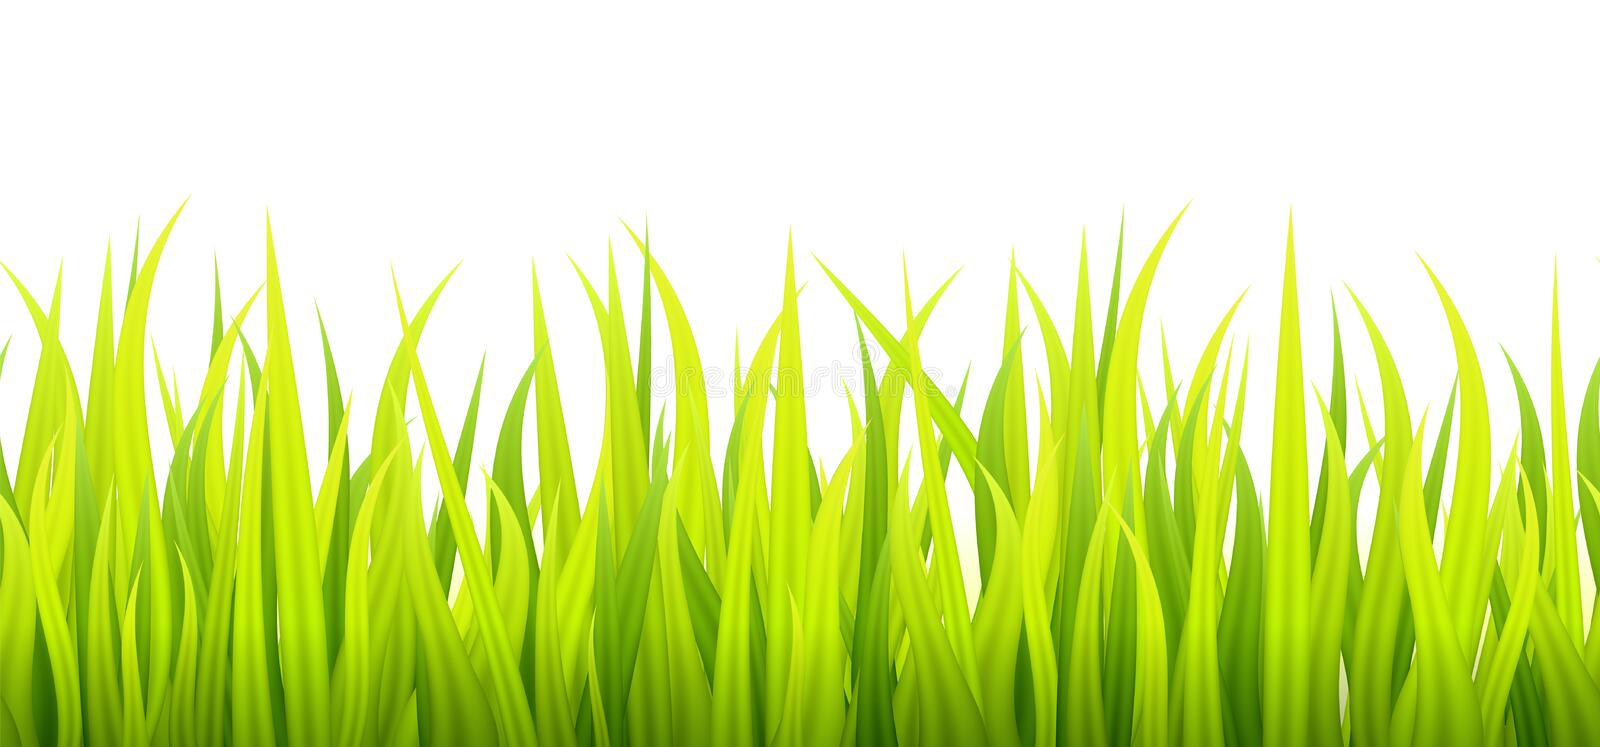 Fresh and green spring grass growth. Springtime lawn lighted with a sunlight during the day time. Seamless herbal height banner vector illustration